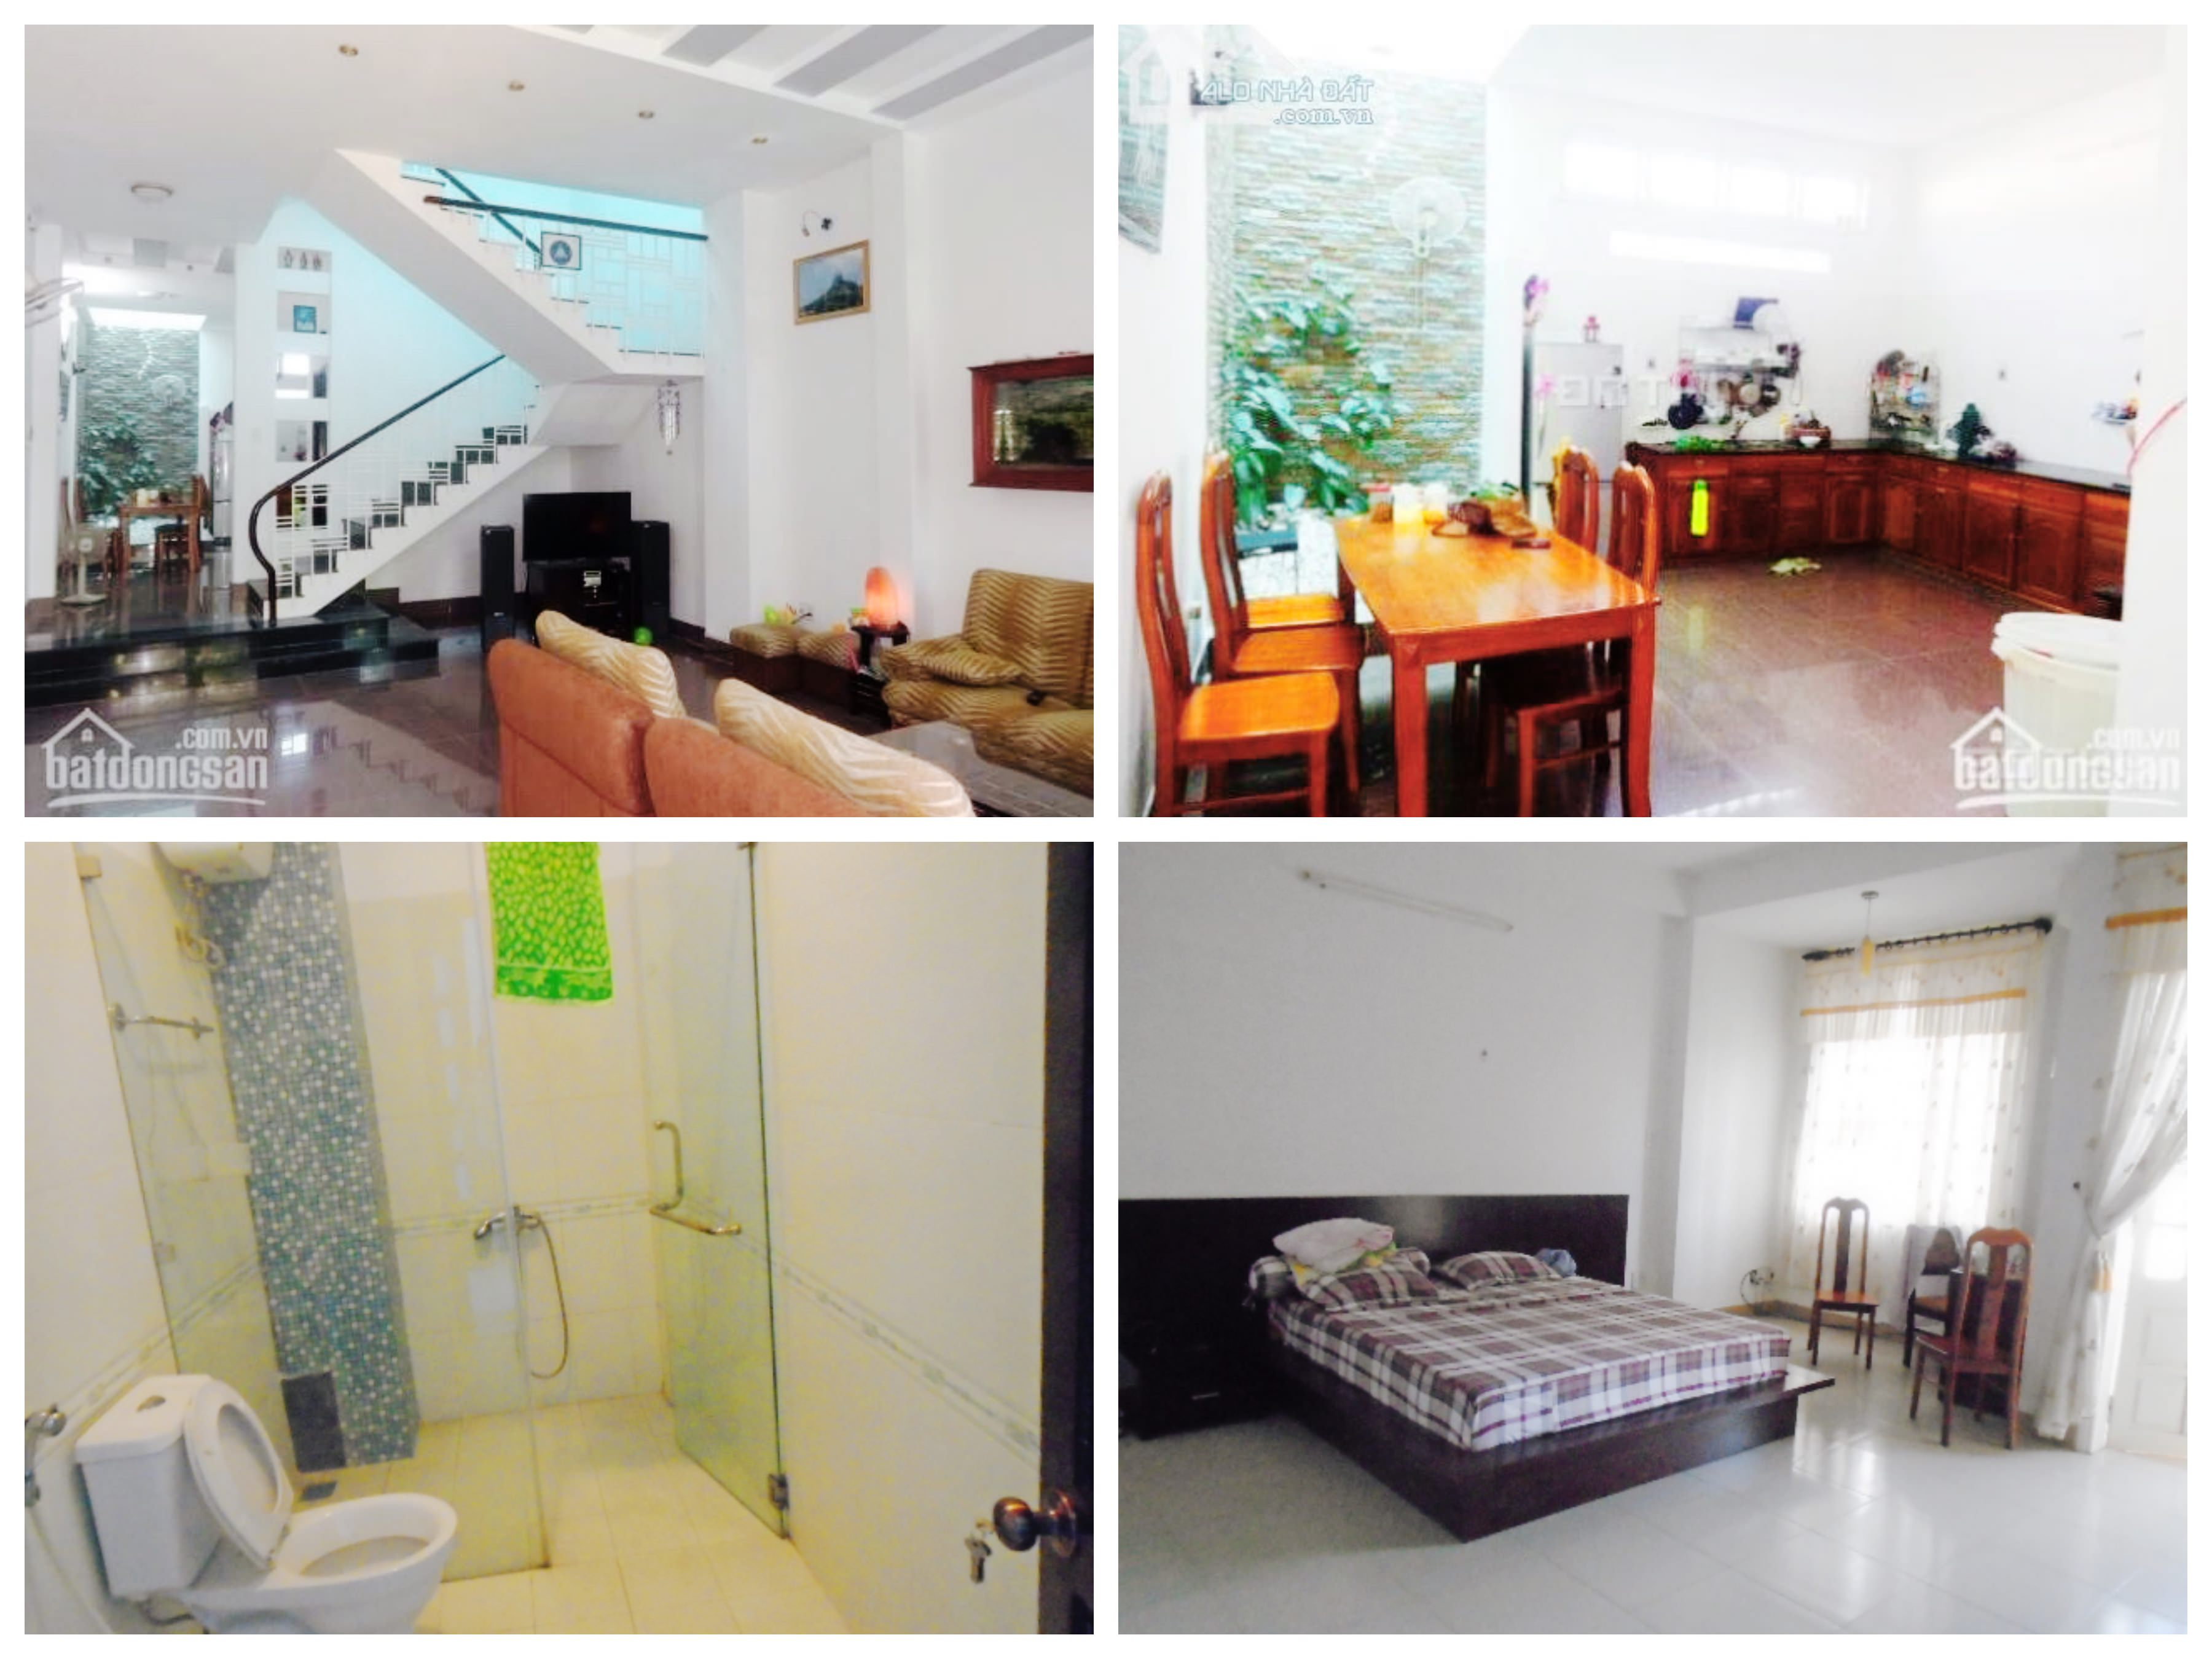 House for rent with 4 bedrooms at the price 14 million dongs, near My Khe beach